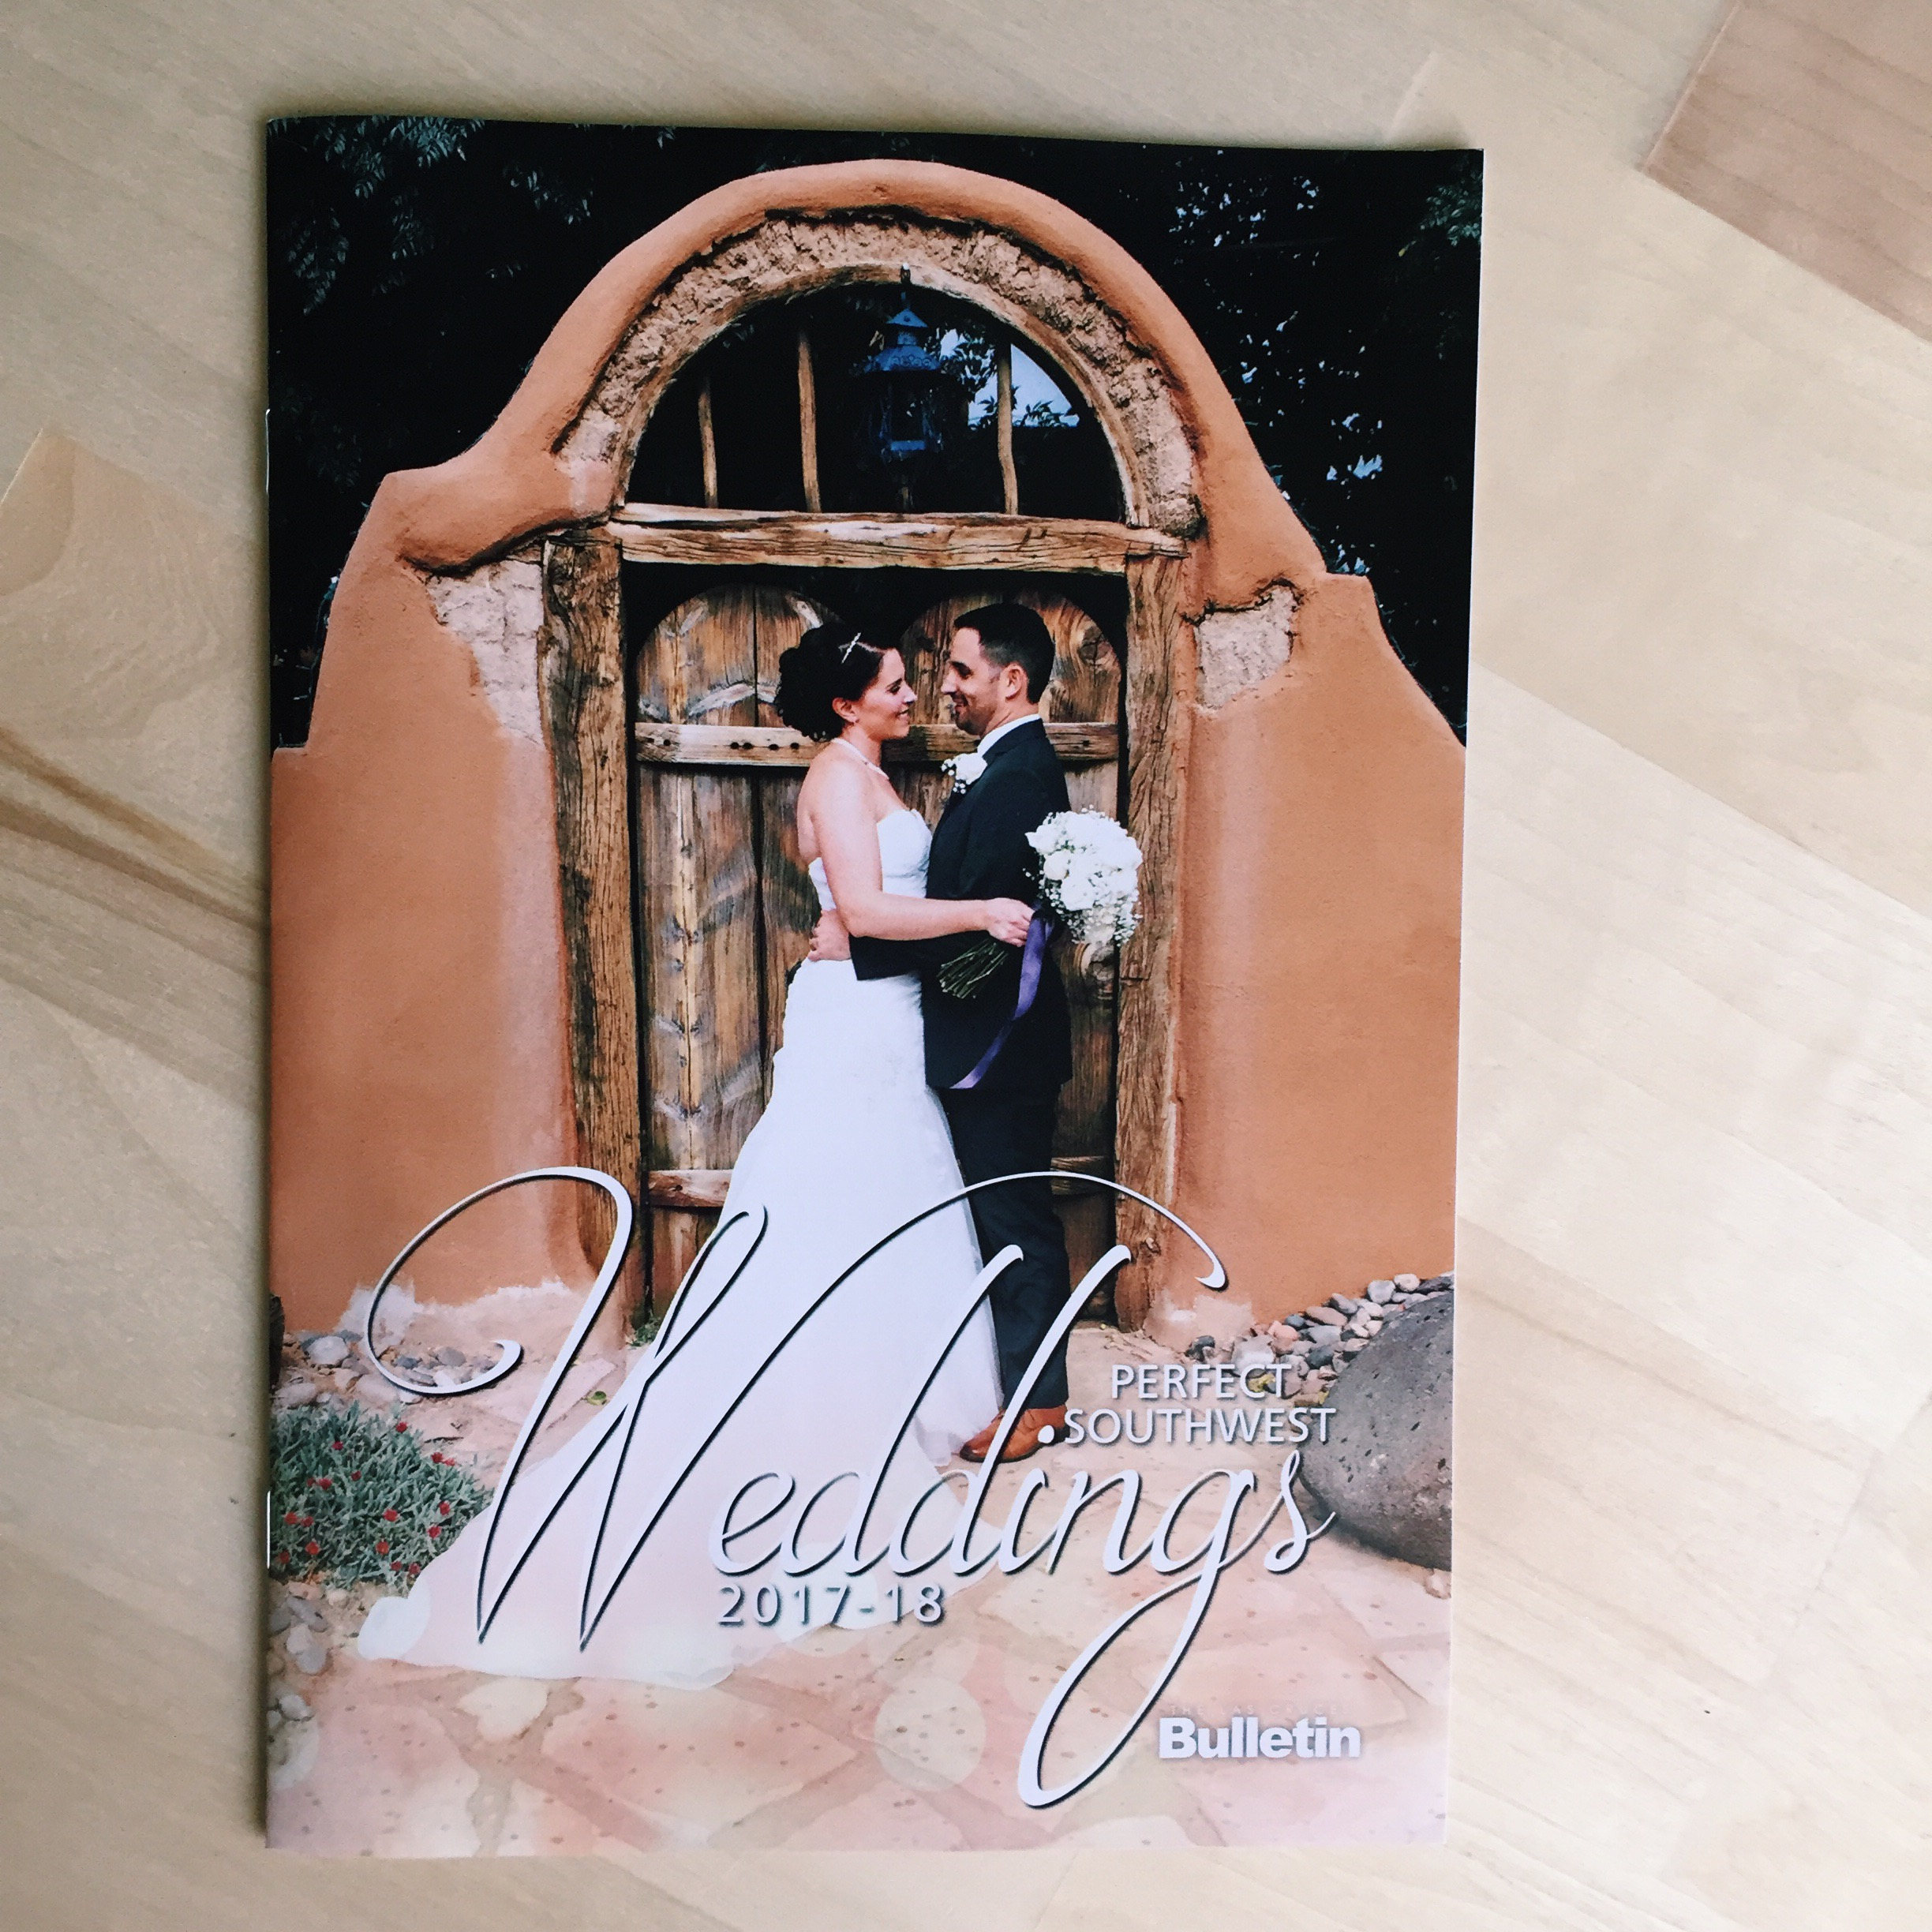 chair cover rentals las cruces nm adjustable floor with 5 settings wedding vendors taylor d photography besides highlighting our new mexico brides and grooms the guide also features talent of other